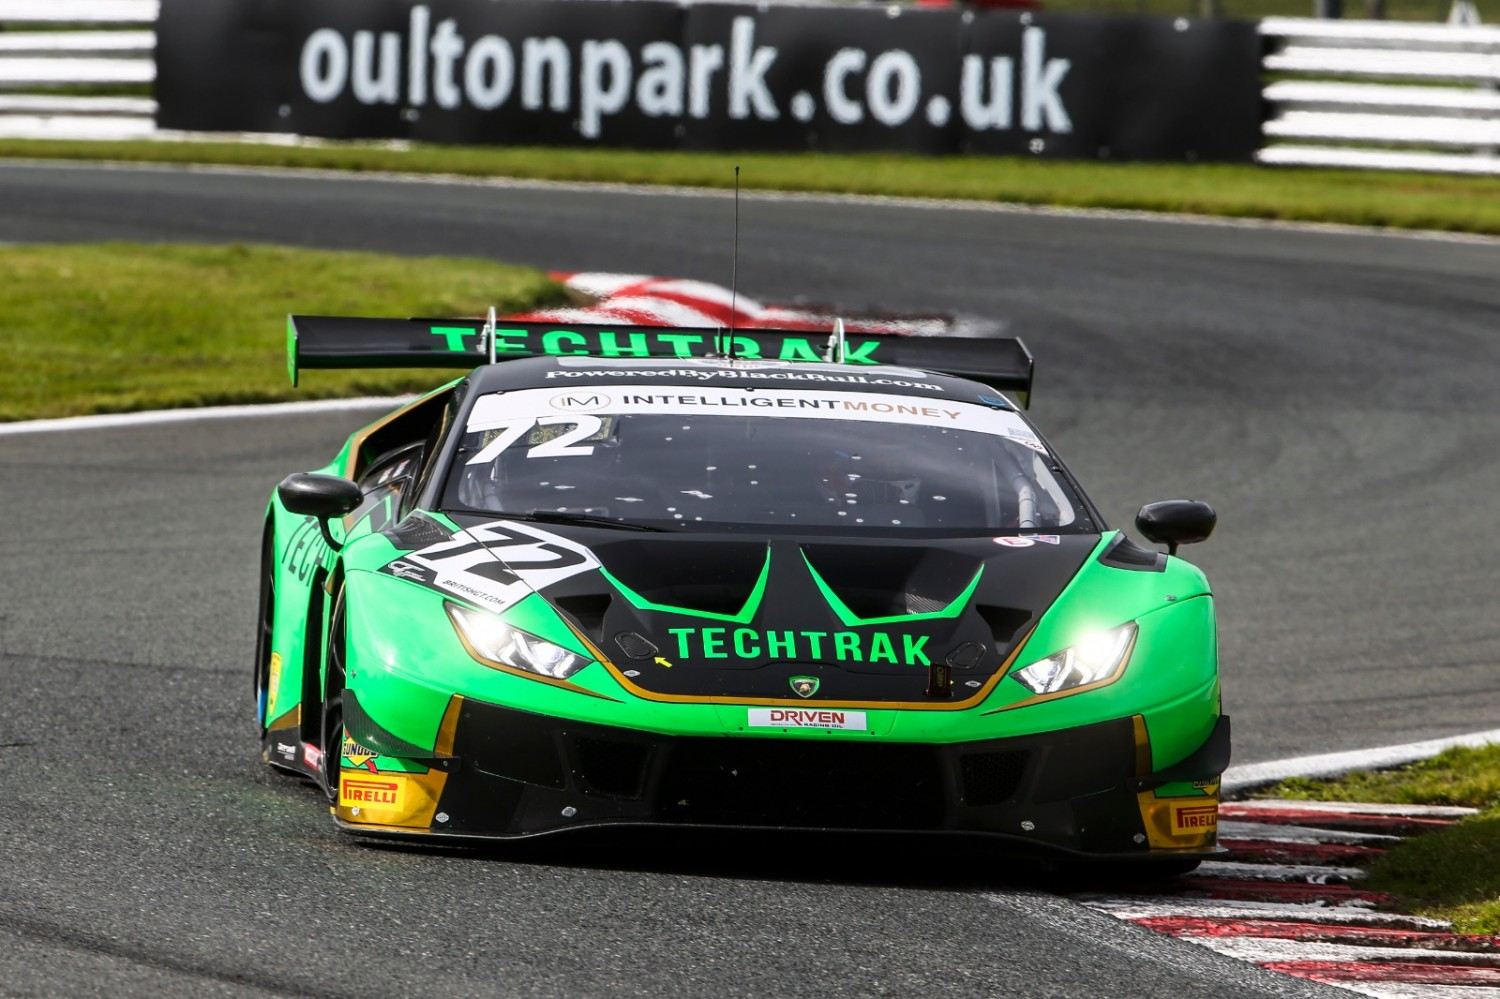 Oulton Park FP1: Keen and O'Connor set the early pace